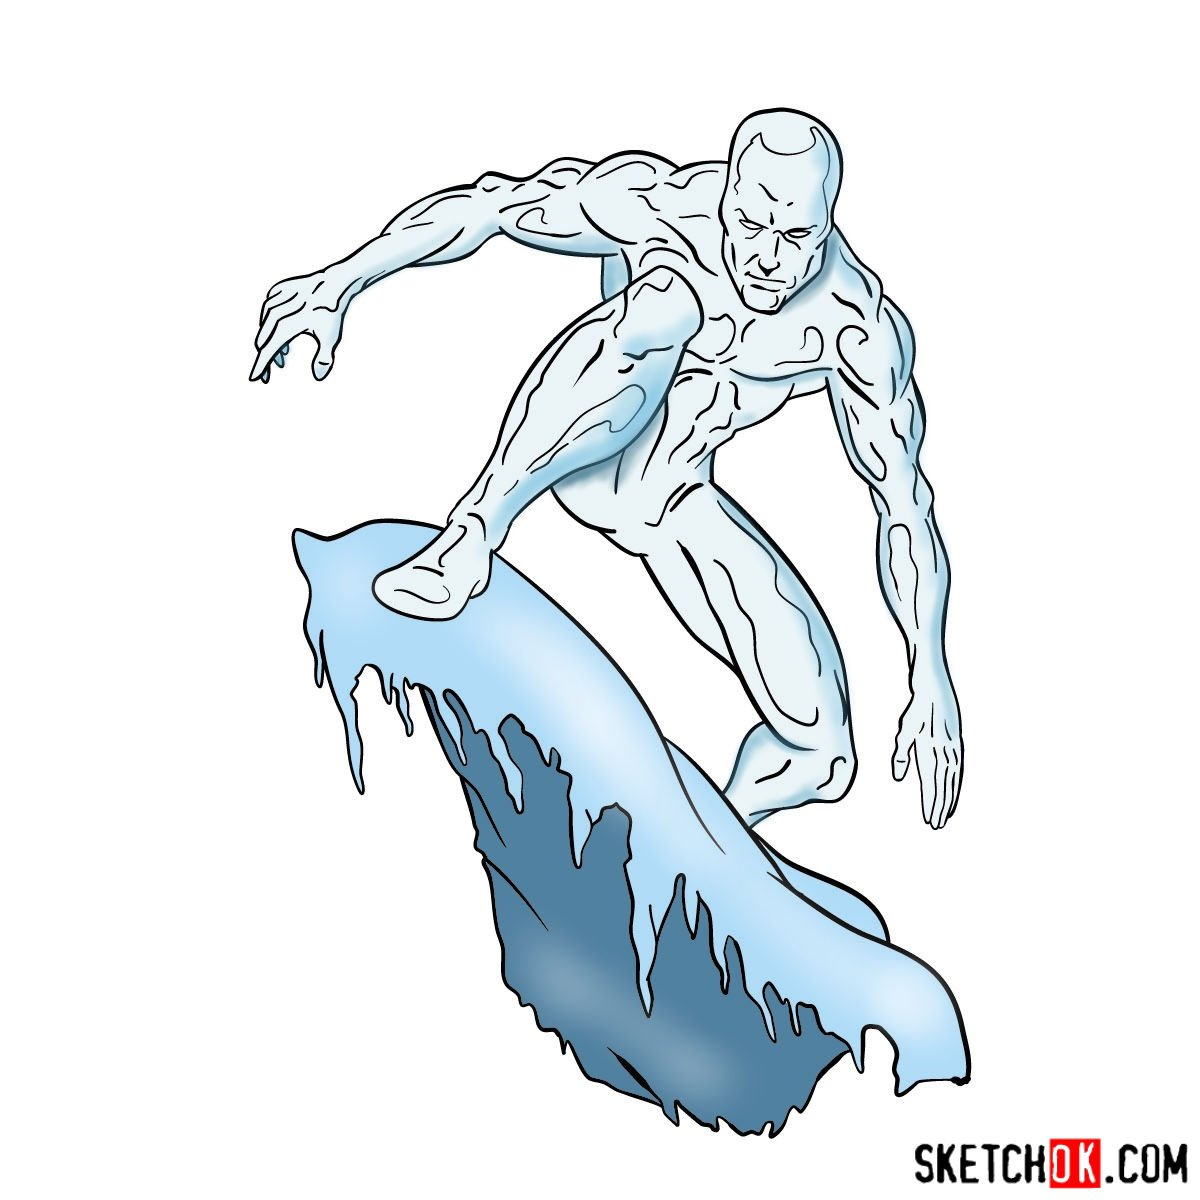 How to draw Iceman – step by step drawing tutorial